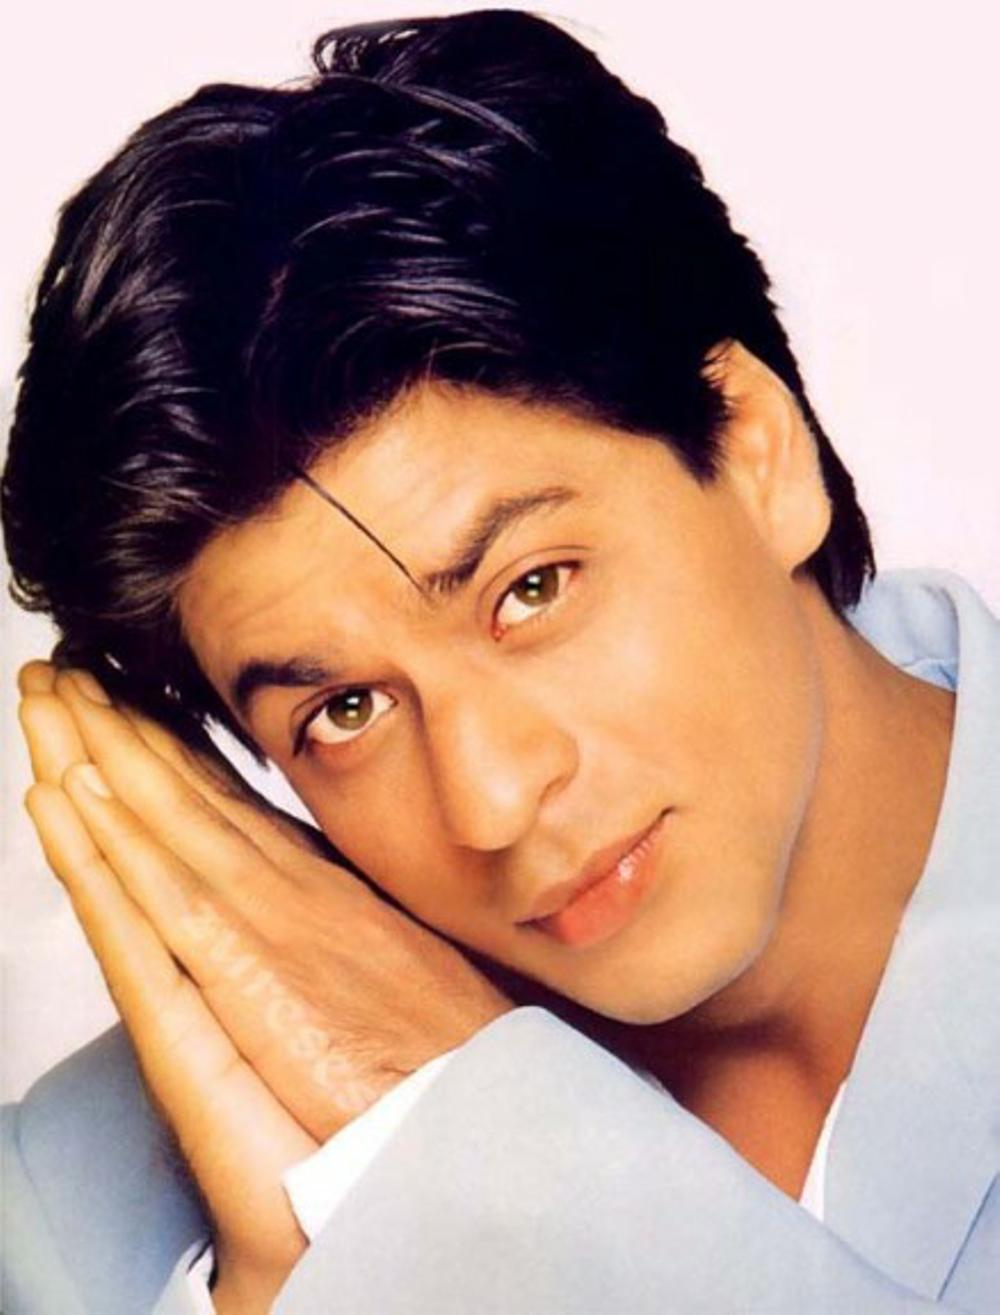 #SRKPictureTreasure: If innocence could have a face, it would have looked just like Shah Rukh Khan �� https://t.co/yFJ8ZC6Snz